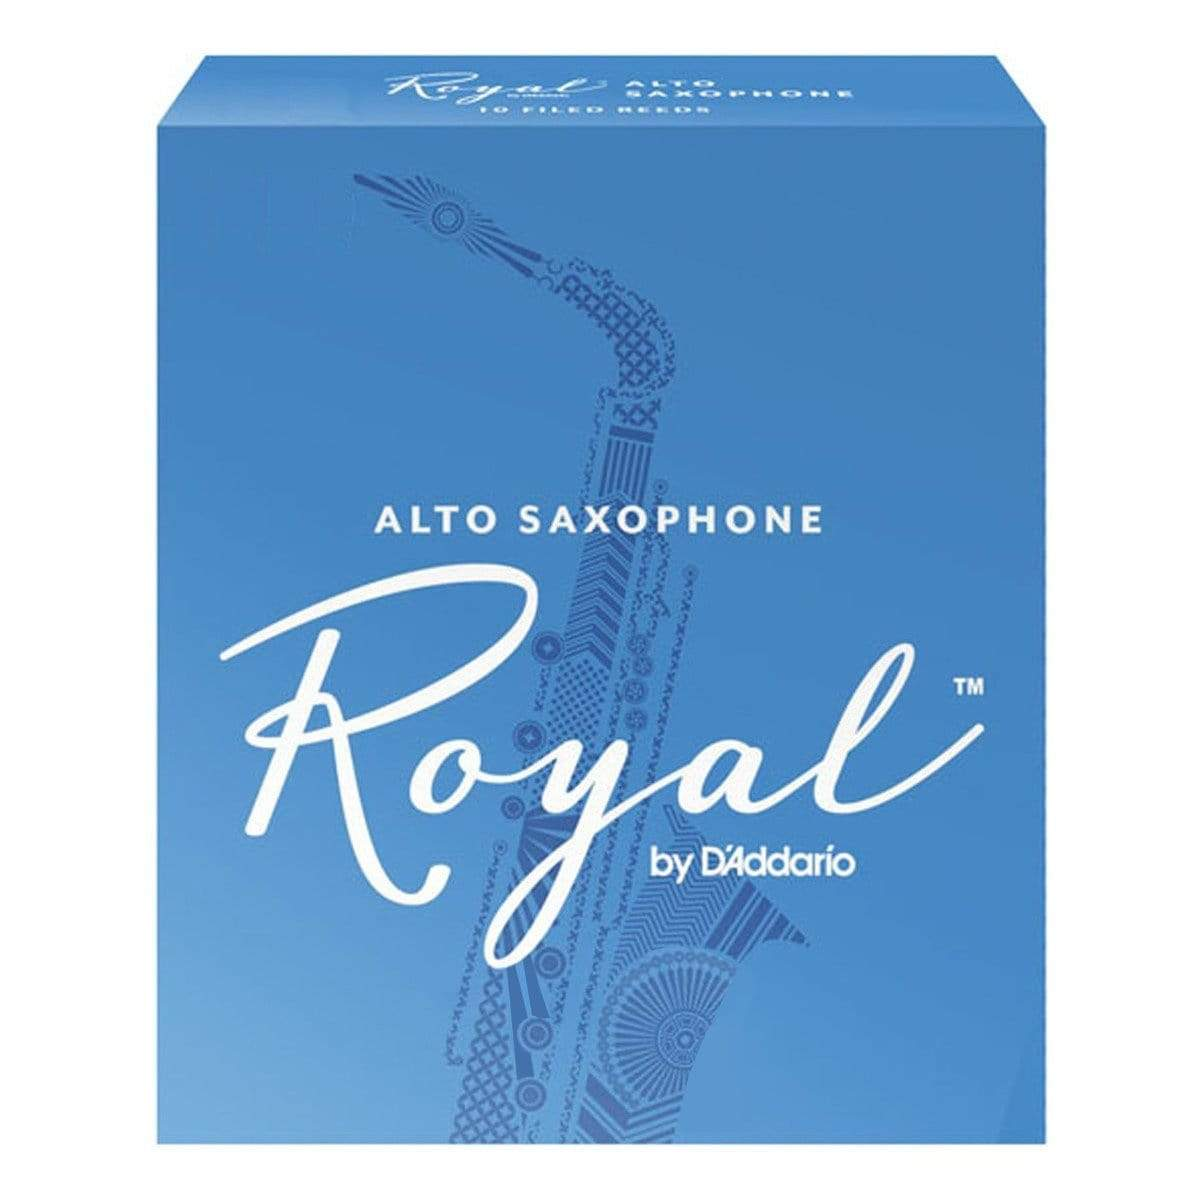 Royal by D'Addario RJB1015 Alto Sax Reeds, 1.5 - 1 Pc